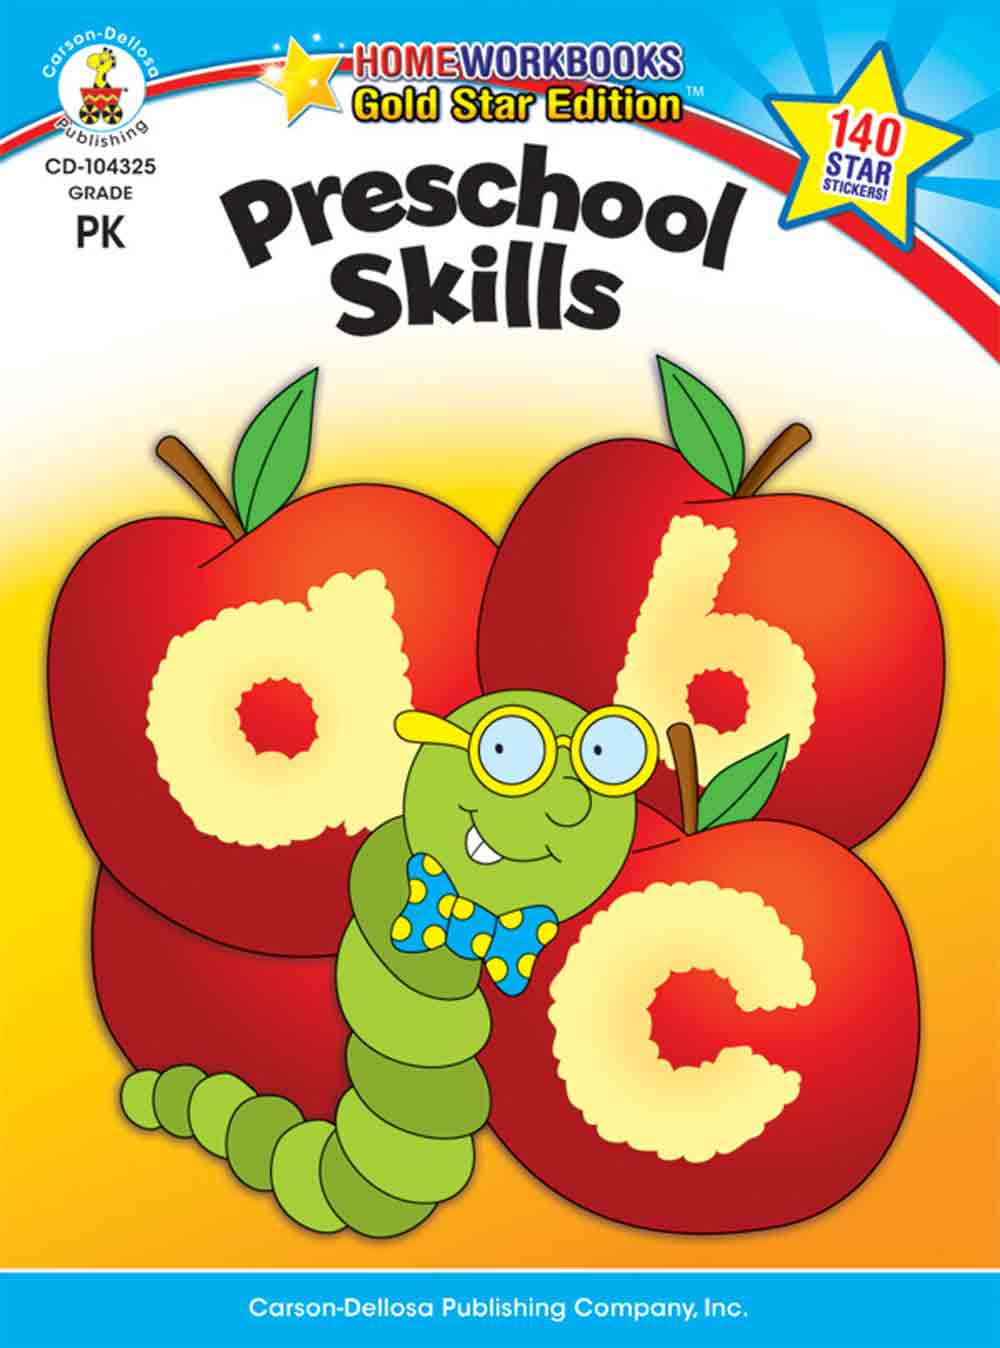 Preschool Skills: Gold Star Edition - Carson-Dellosa Publishing